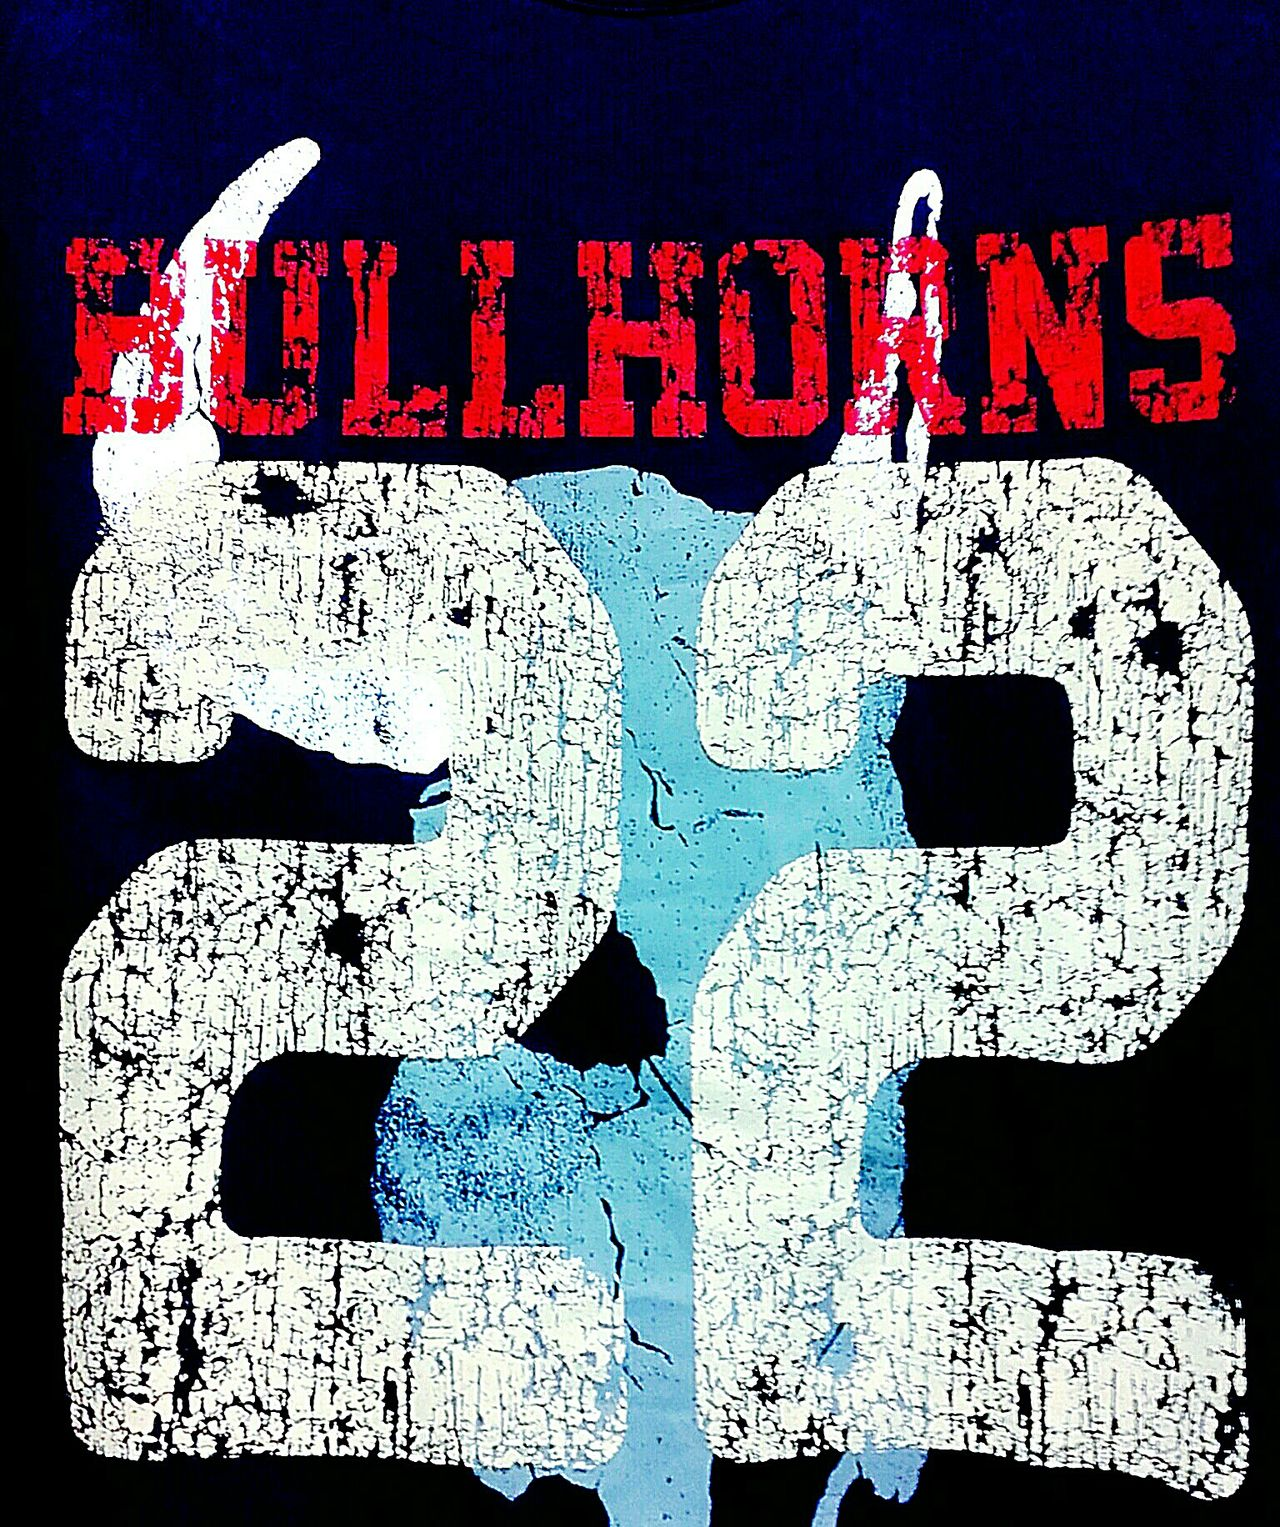 Thebullhorns The Bullhorns 22 T Shirt Twenty Two Twentytwo Teeshirt Bullhorns Alphabetical & Numerical Tee Shirt Tshirt Tees 11+11= Tshirts Twenty Two!! Tshirtcollection Tshirtporn Tshirtdesign T Shirt Collection Tshirt♡ Number22 Number 22 20two 20 Two Numbers